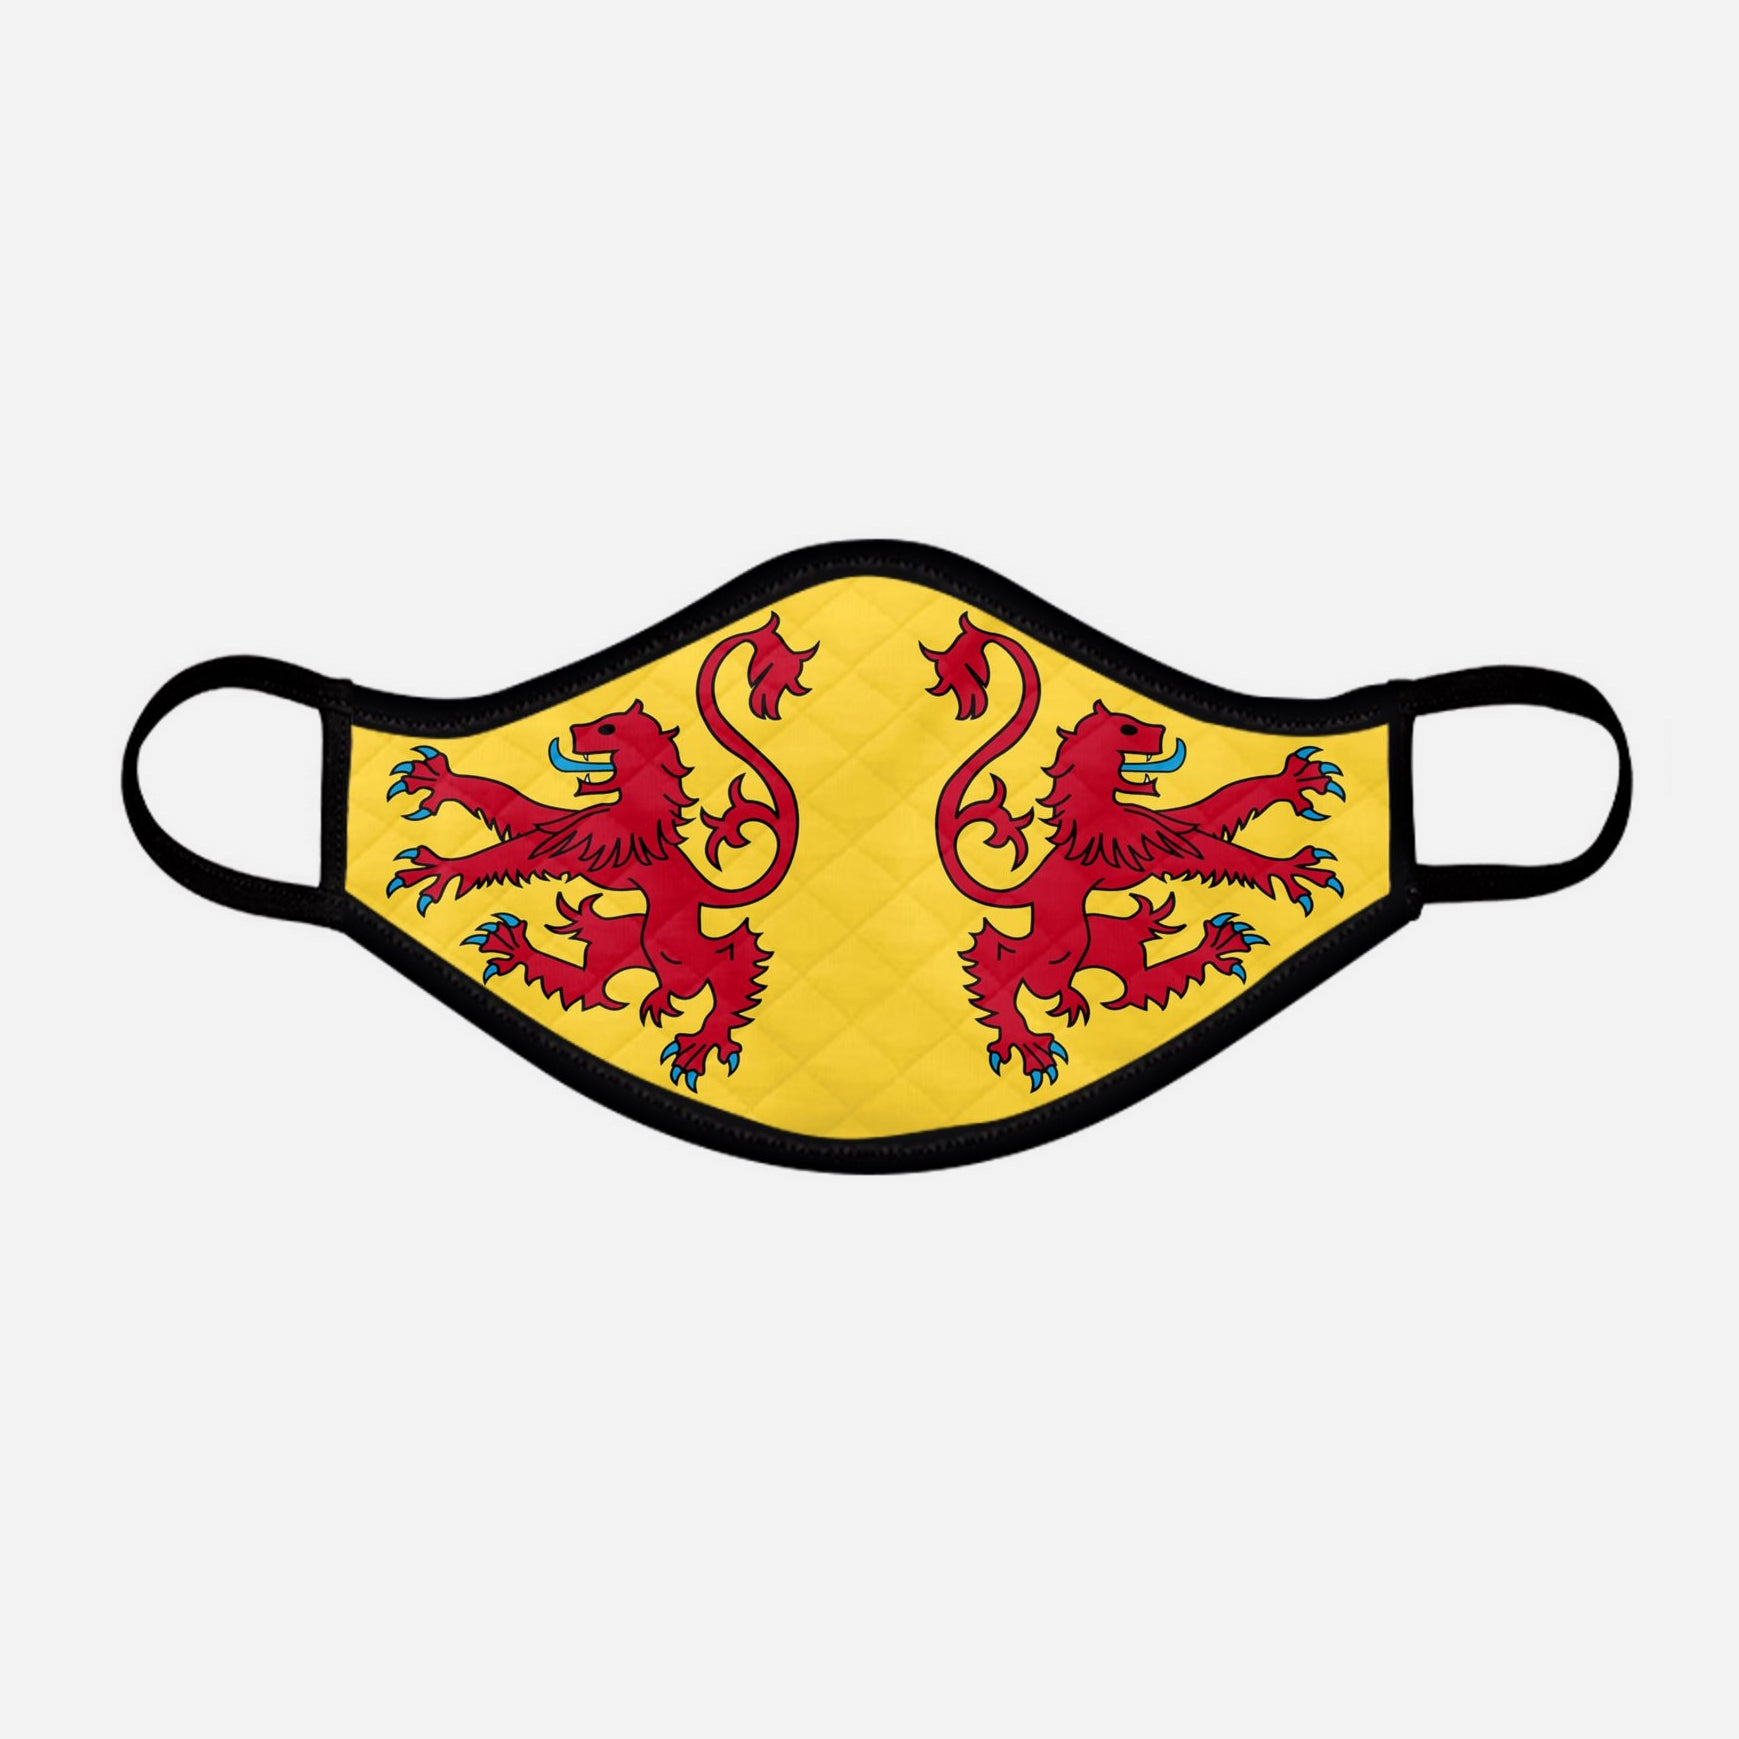 The Scottish Lion Rampant Royal Standard of Scotland Face Mask - Medium - by the Steven Patrick Sim Tartan Artisan - Stevie Tartan Guy Arbroath, Scotland